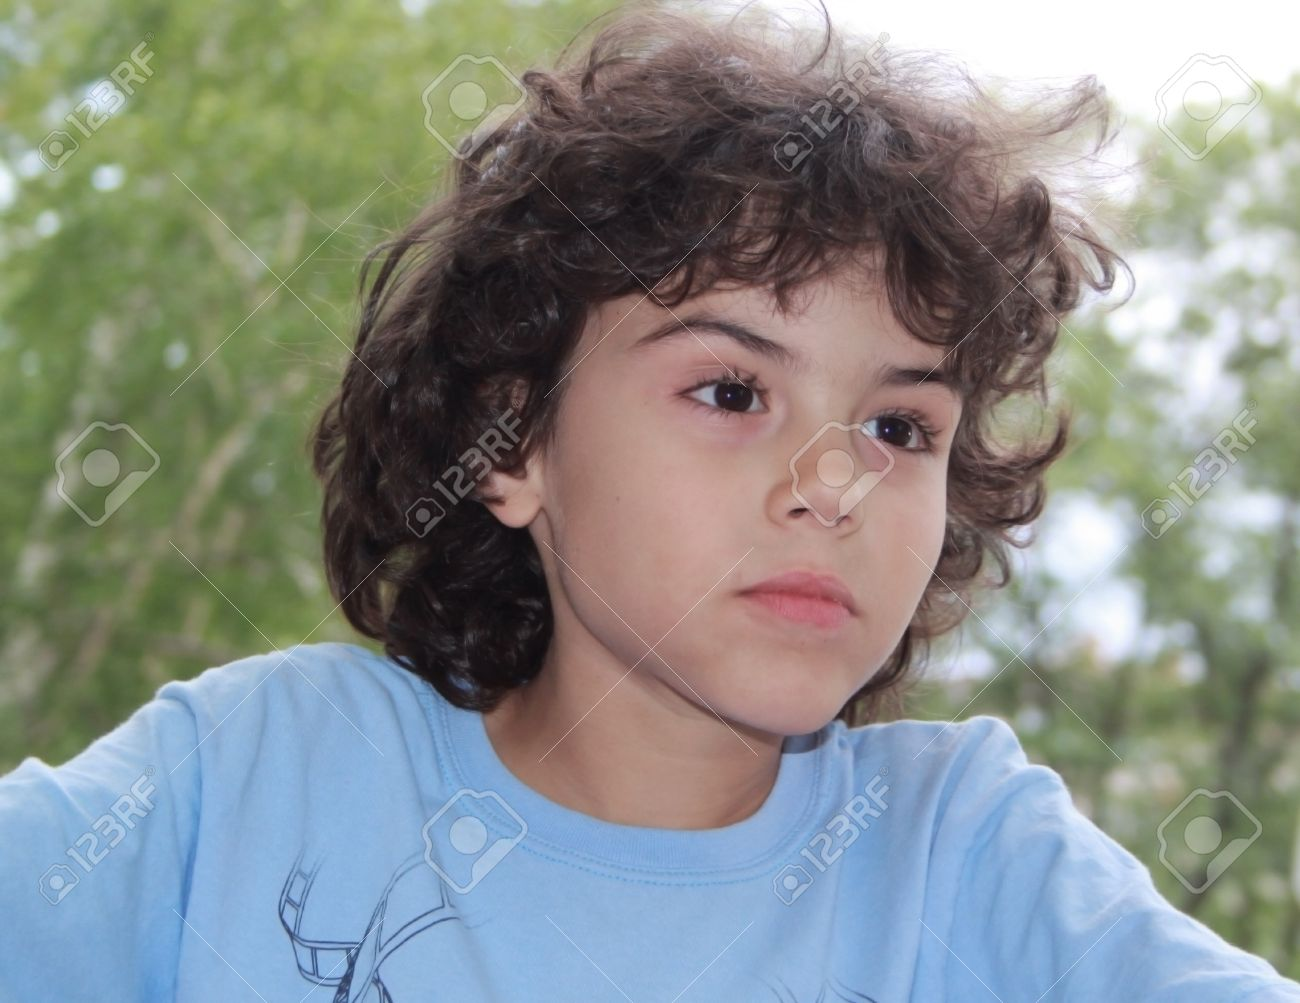 Cute Little Boy With Curly Hair Is Posing In Front Of Camera Stock